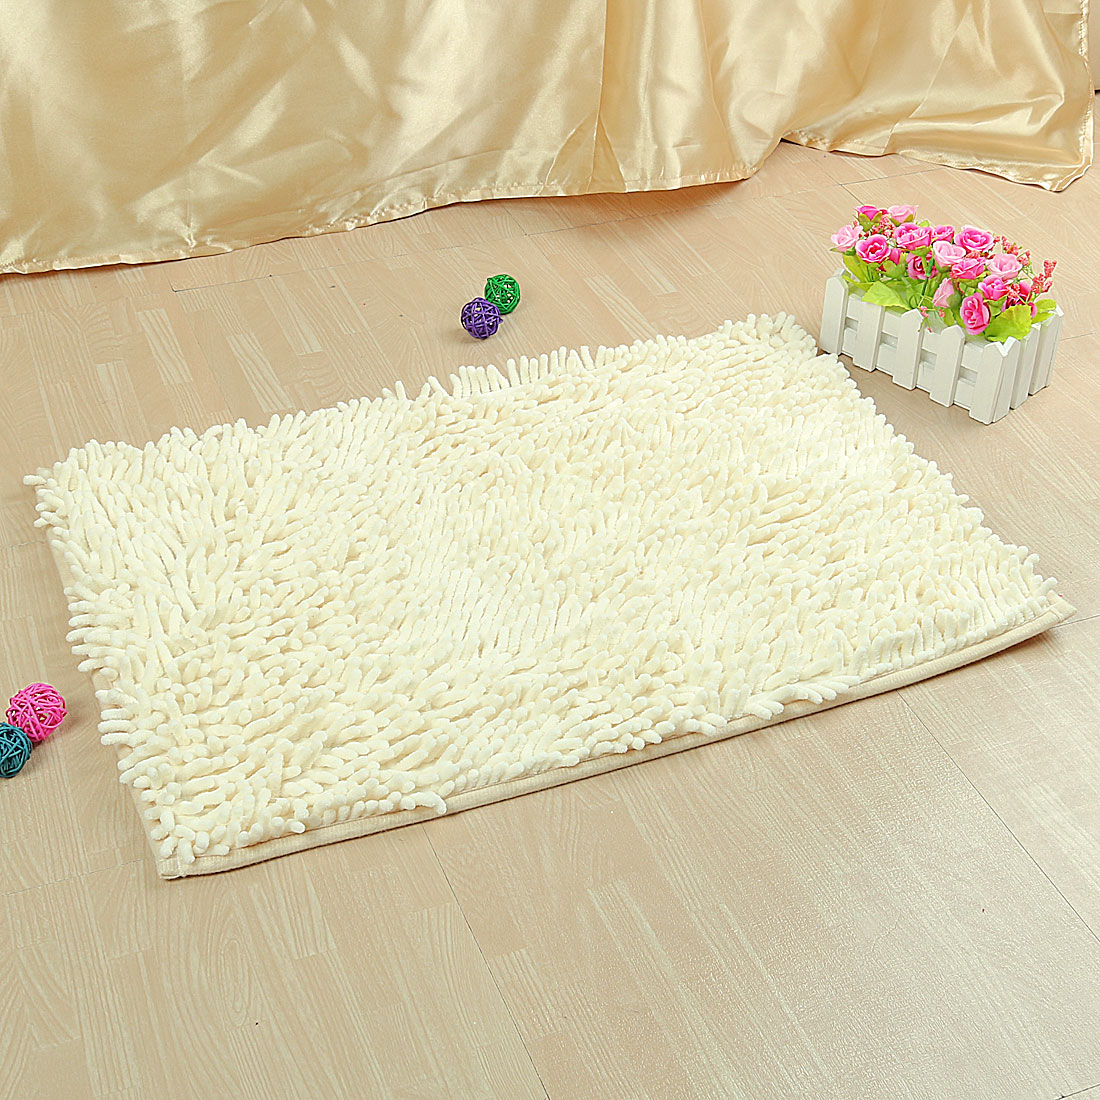 Soft Shaggy Non Slip Bath Mat Bathroom Shower Home Floor Rugs Carpet 40 x 60cm